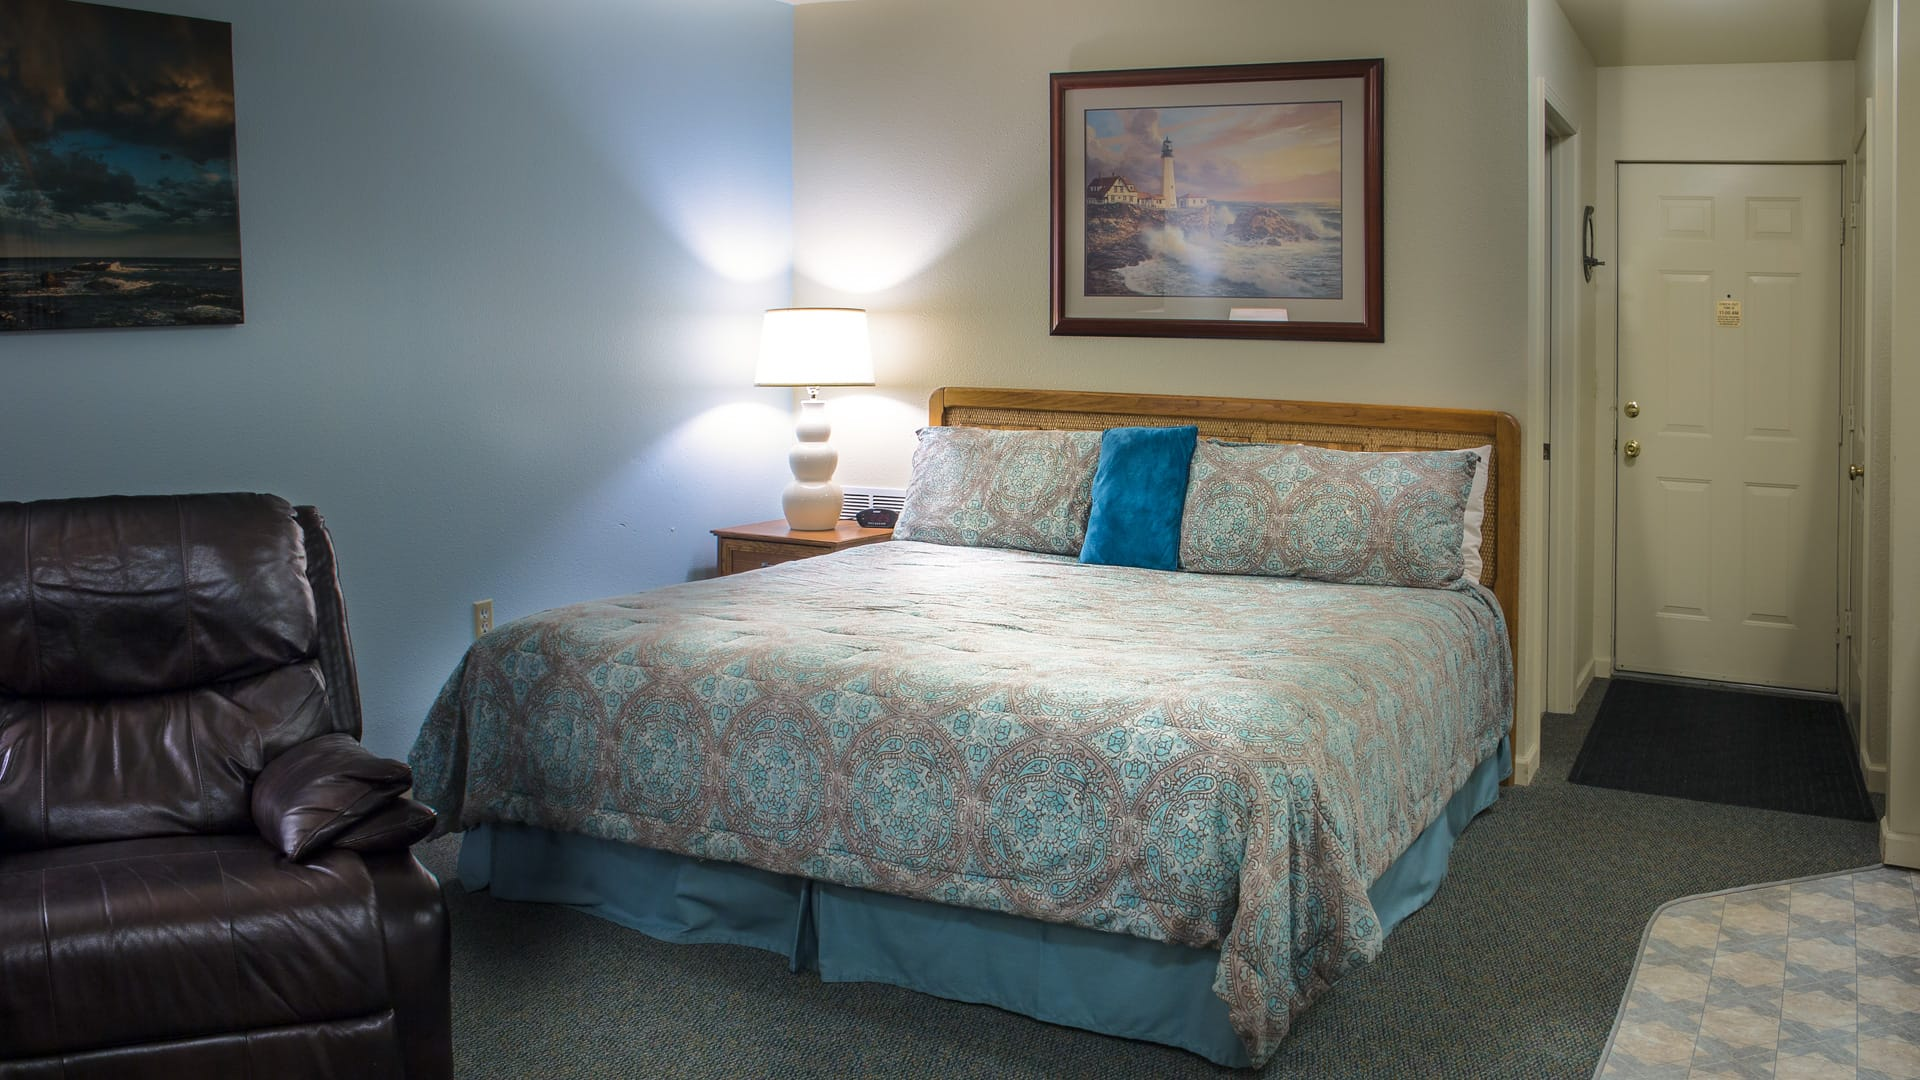 Standard Hotel Guestroom at Inn of the Lost Coast Shelter Cove with King size bed, leather reclining chair, and original artwork.